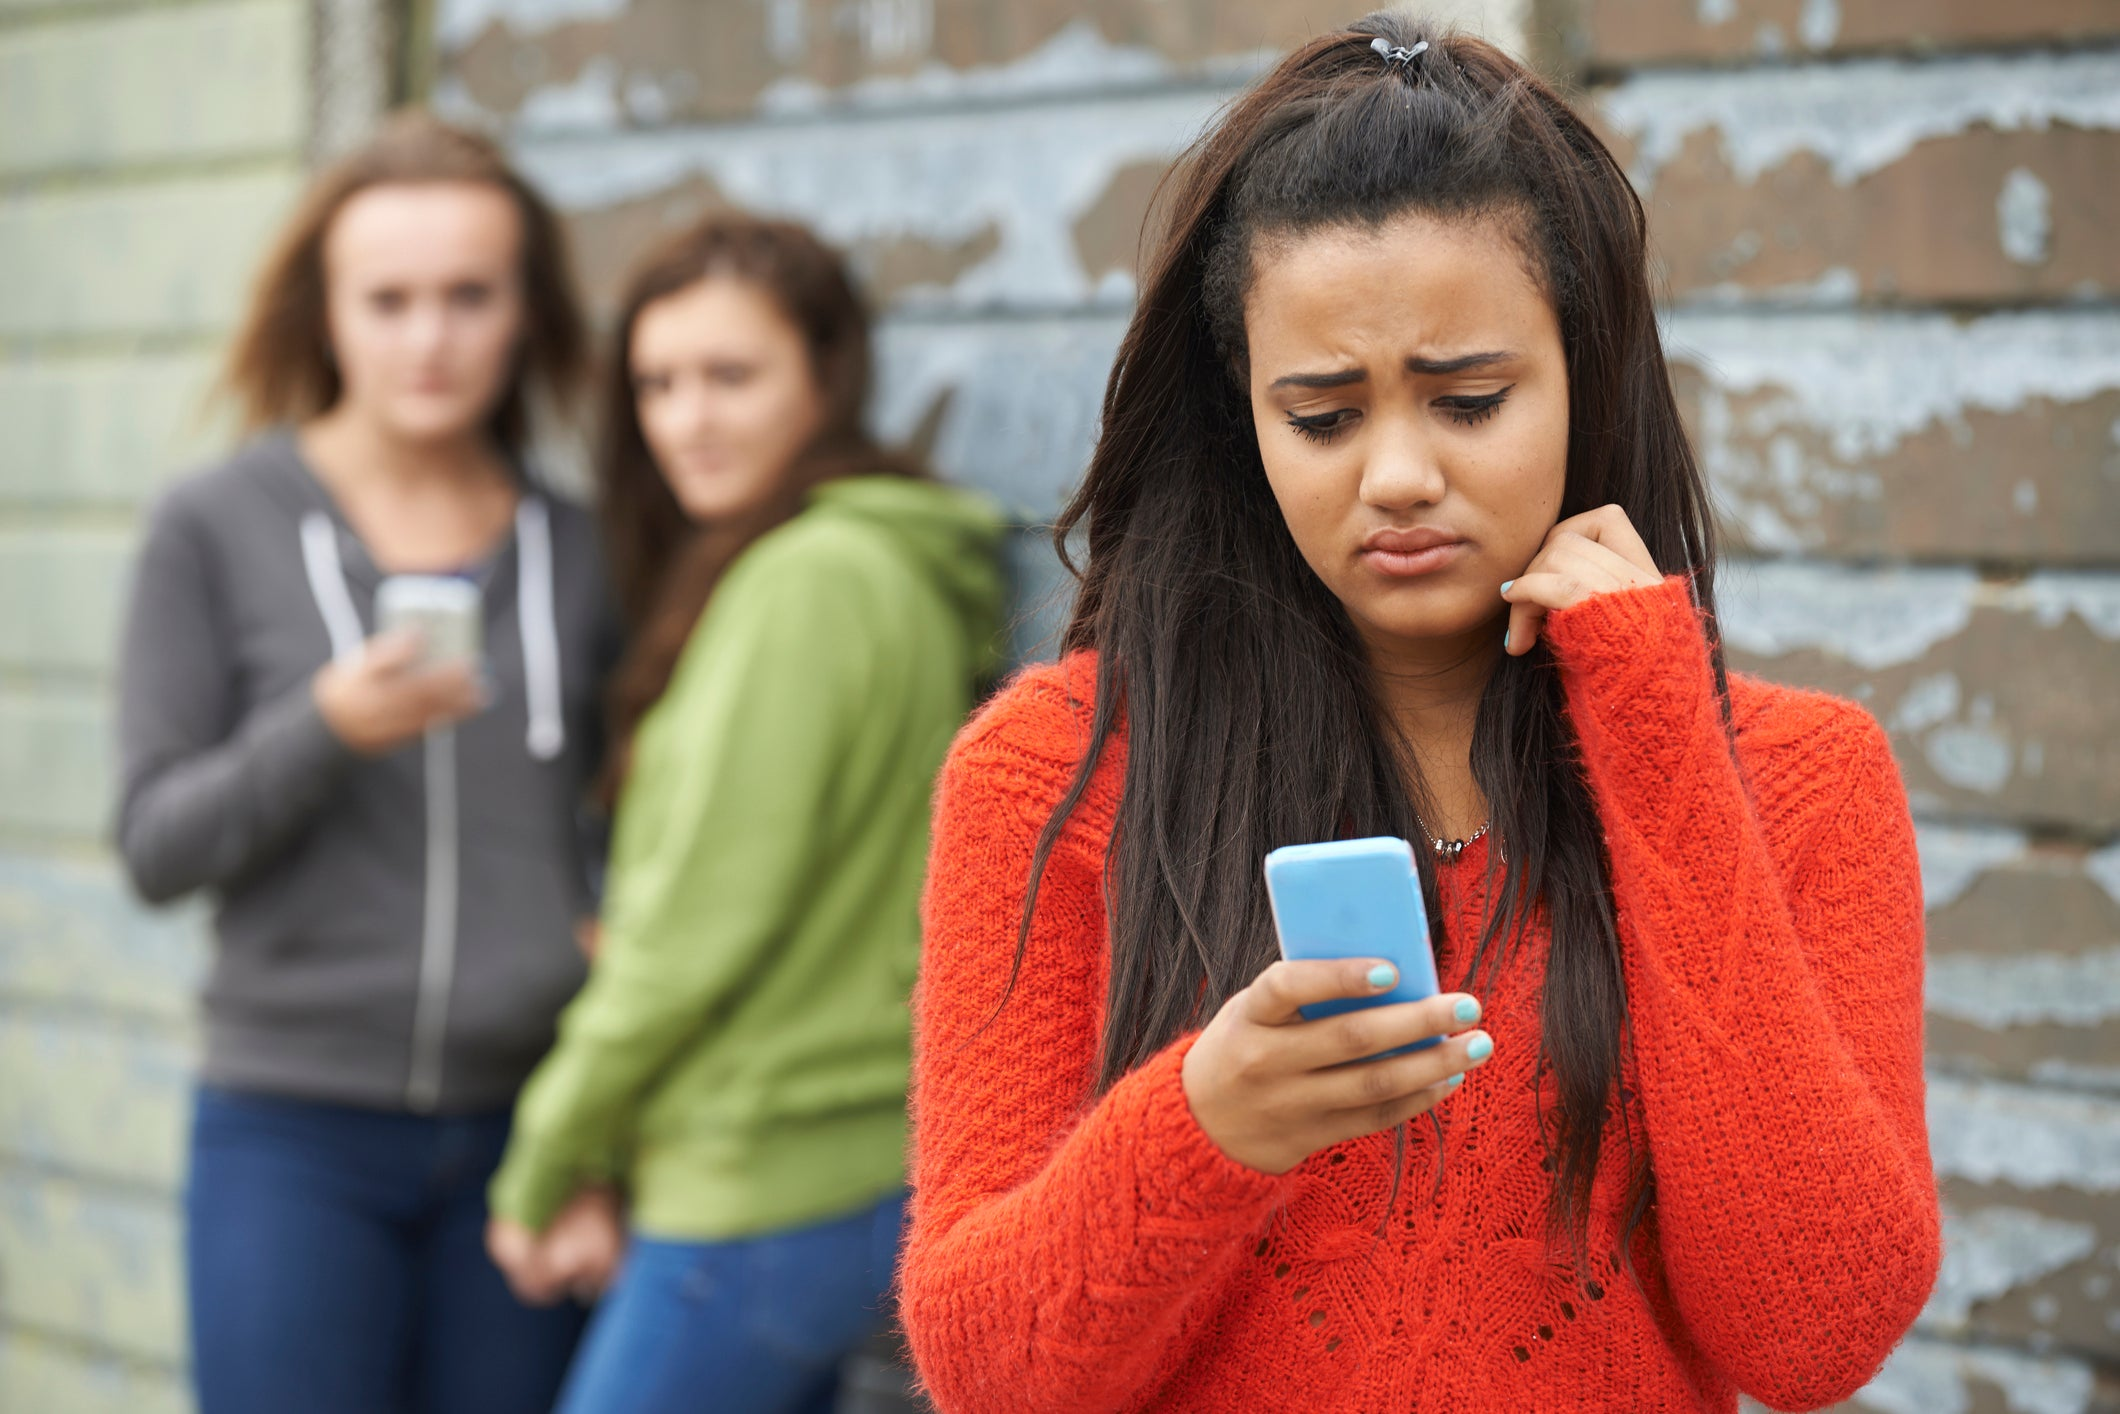 A teen girl looking sad at her phone because of cyberbullying.